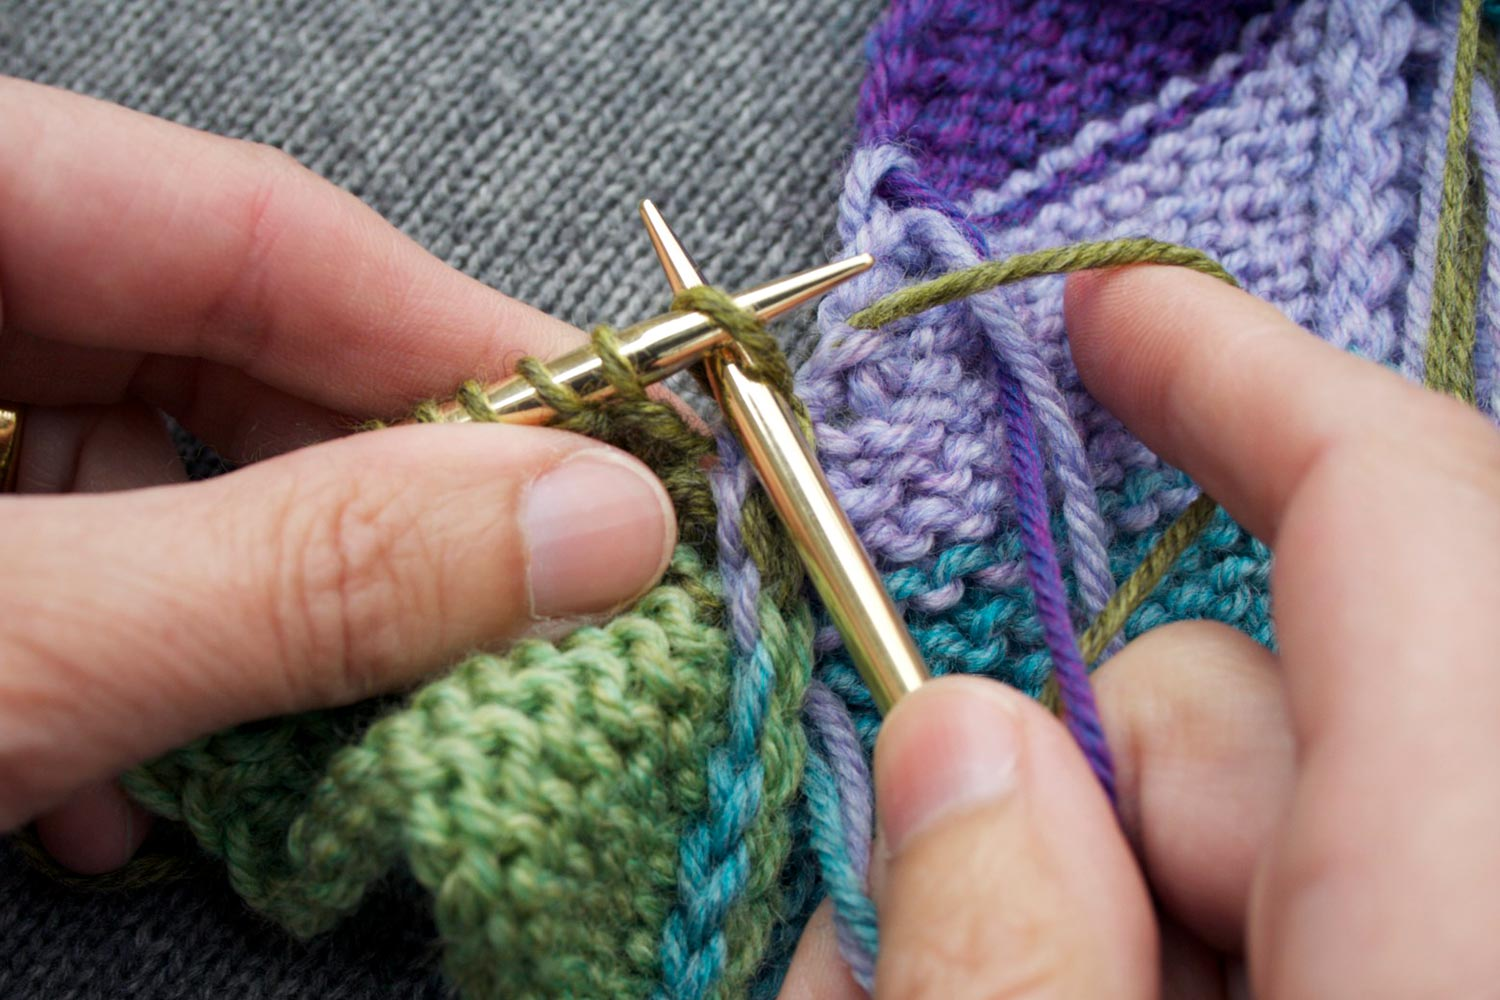 With wrong side facing, right needle inserted in first stitch knitwise, preparing to slip it off.